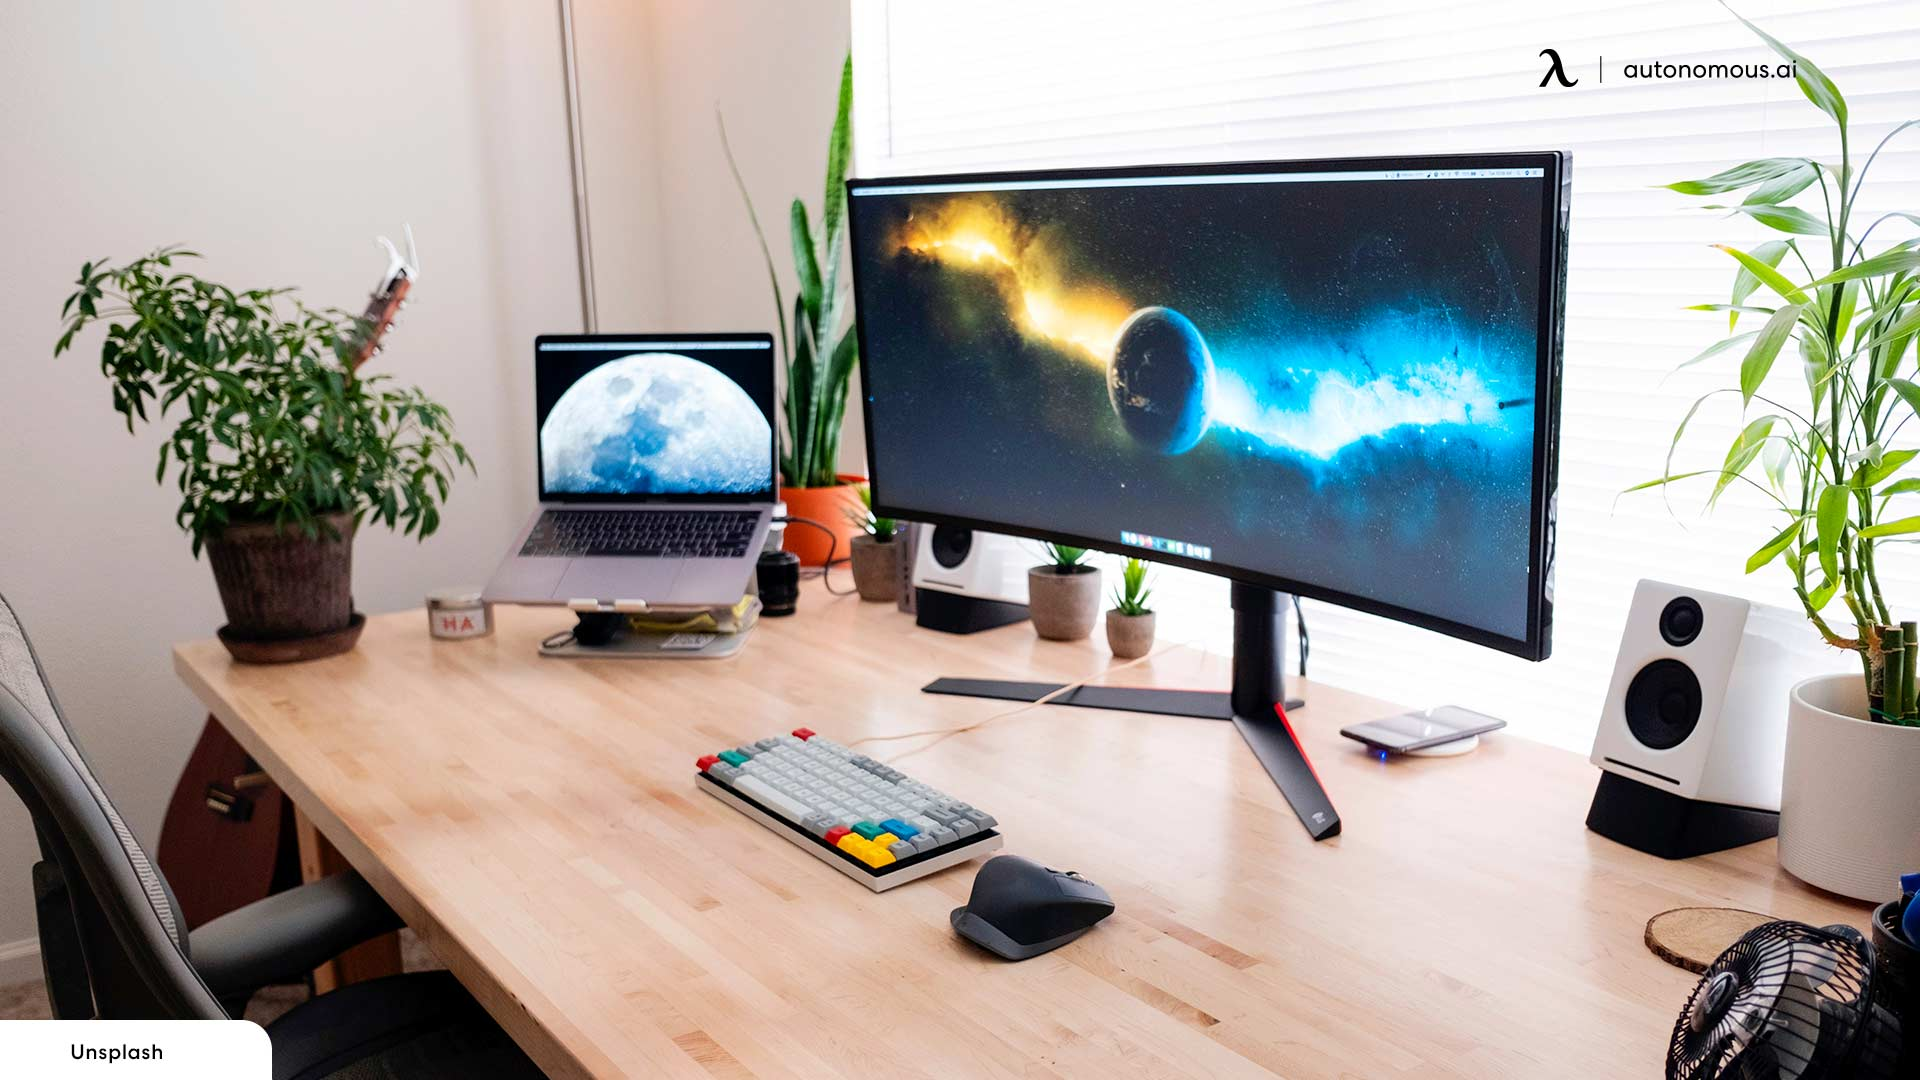 Position Your Monitor, Keyboard, and Mouse Well